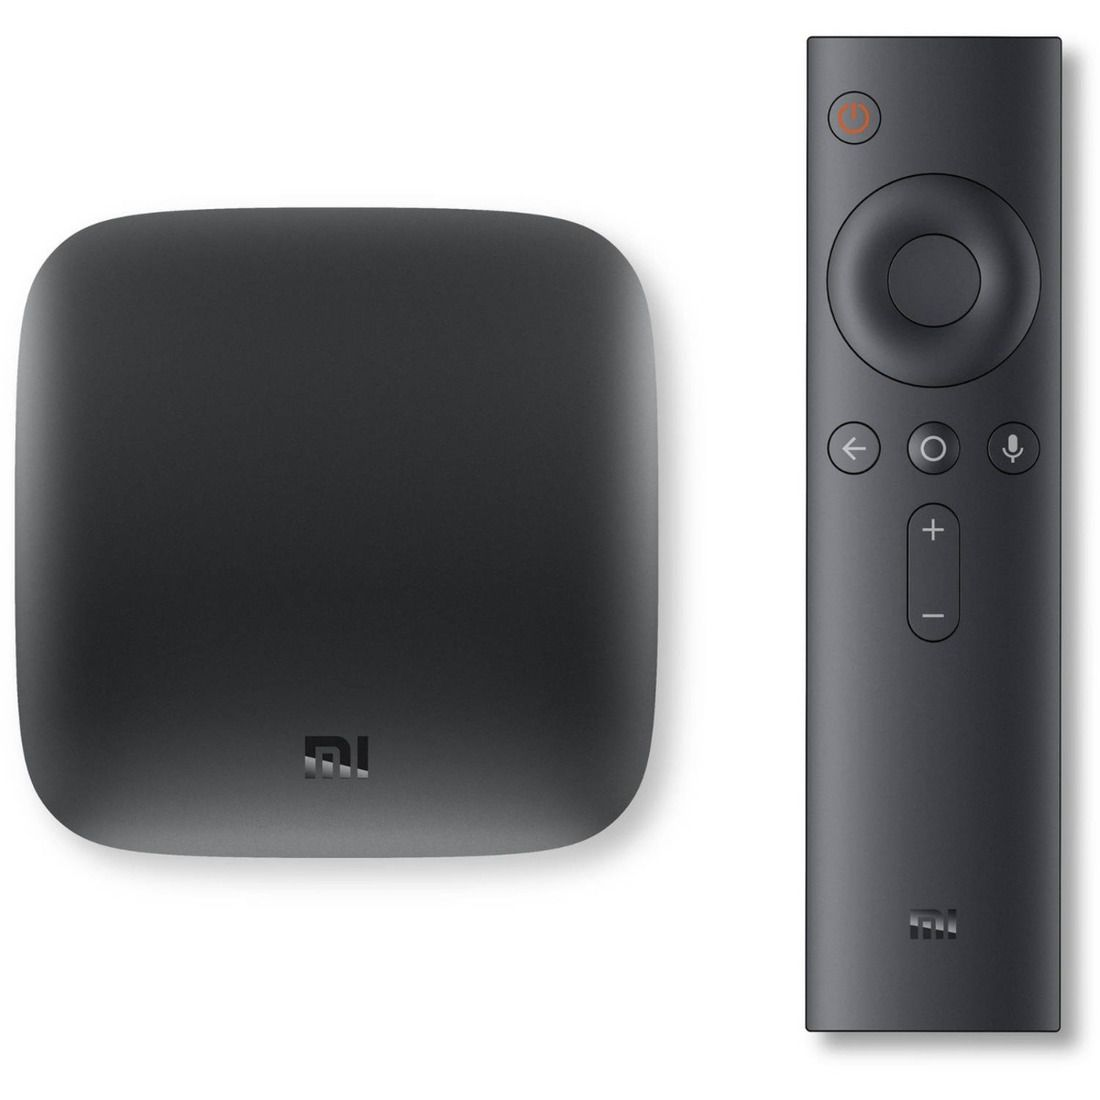 MI Box 3 TV 4K Hdr Android 6.0 8GB versão global - Preto - PAGDEPOIS